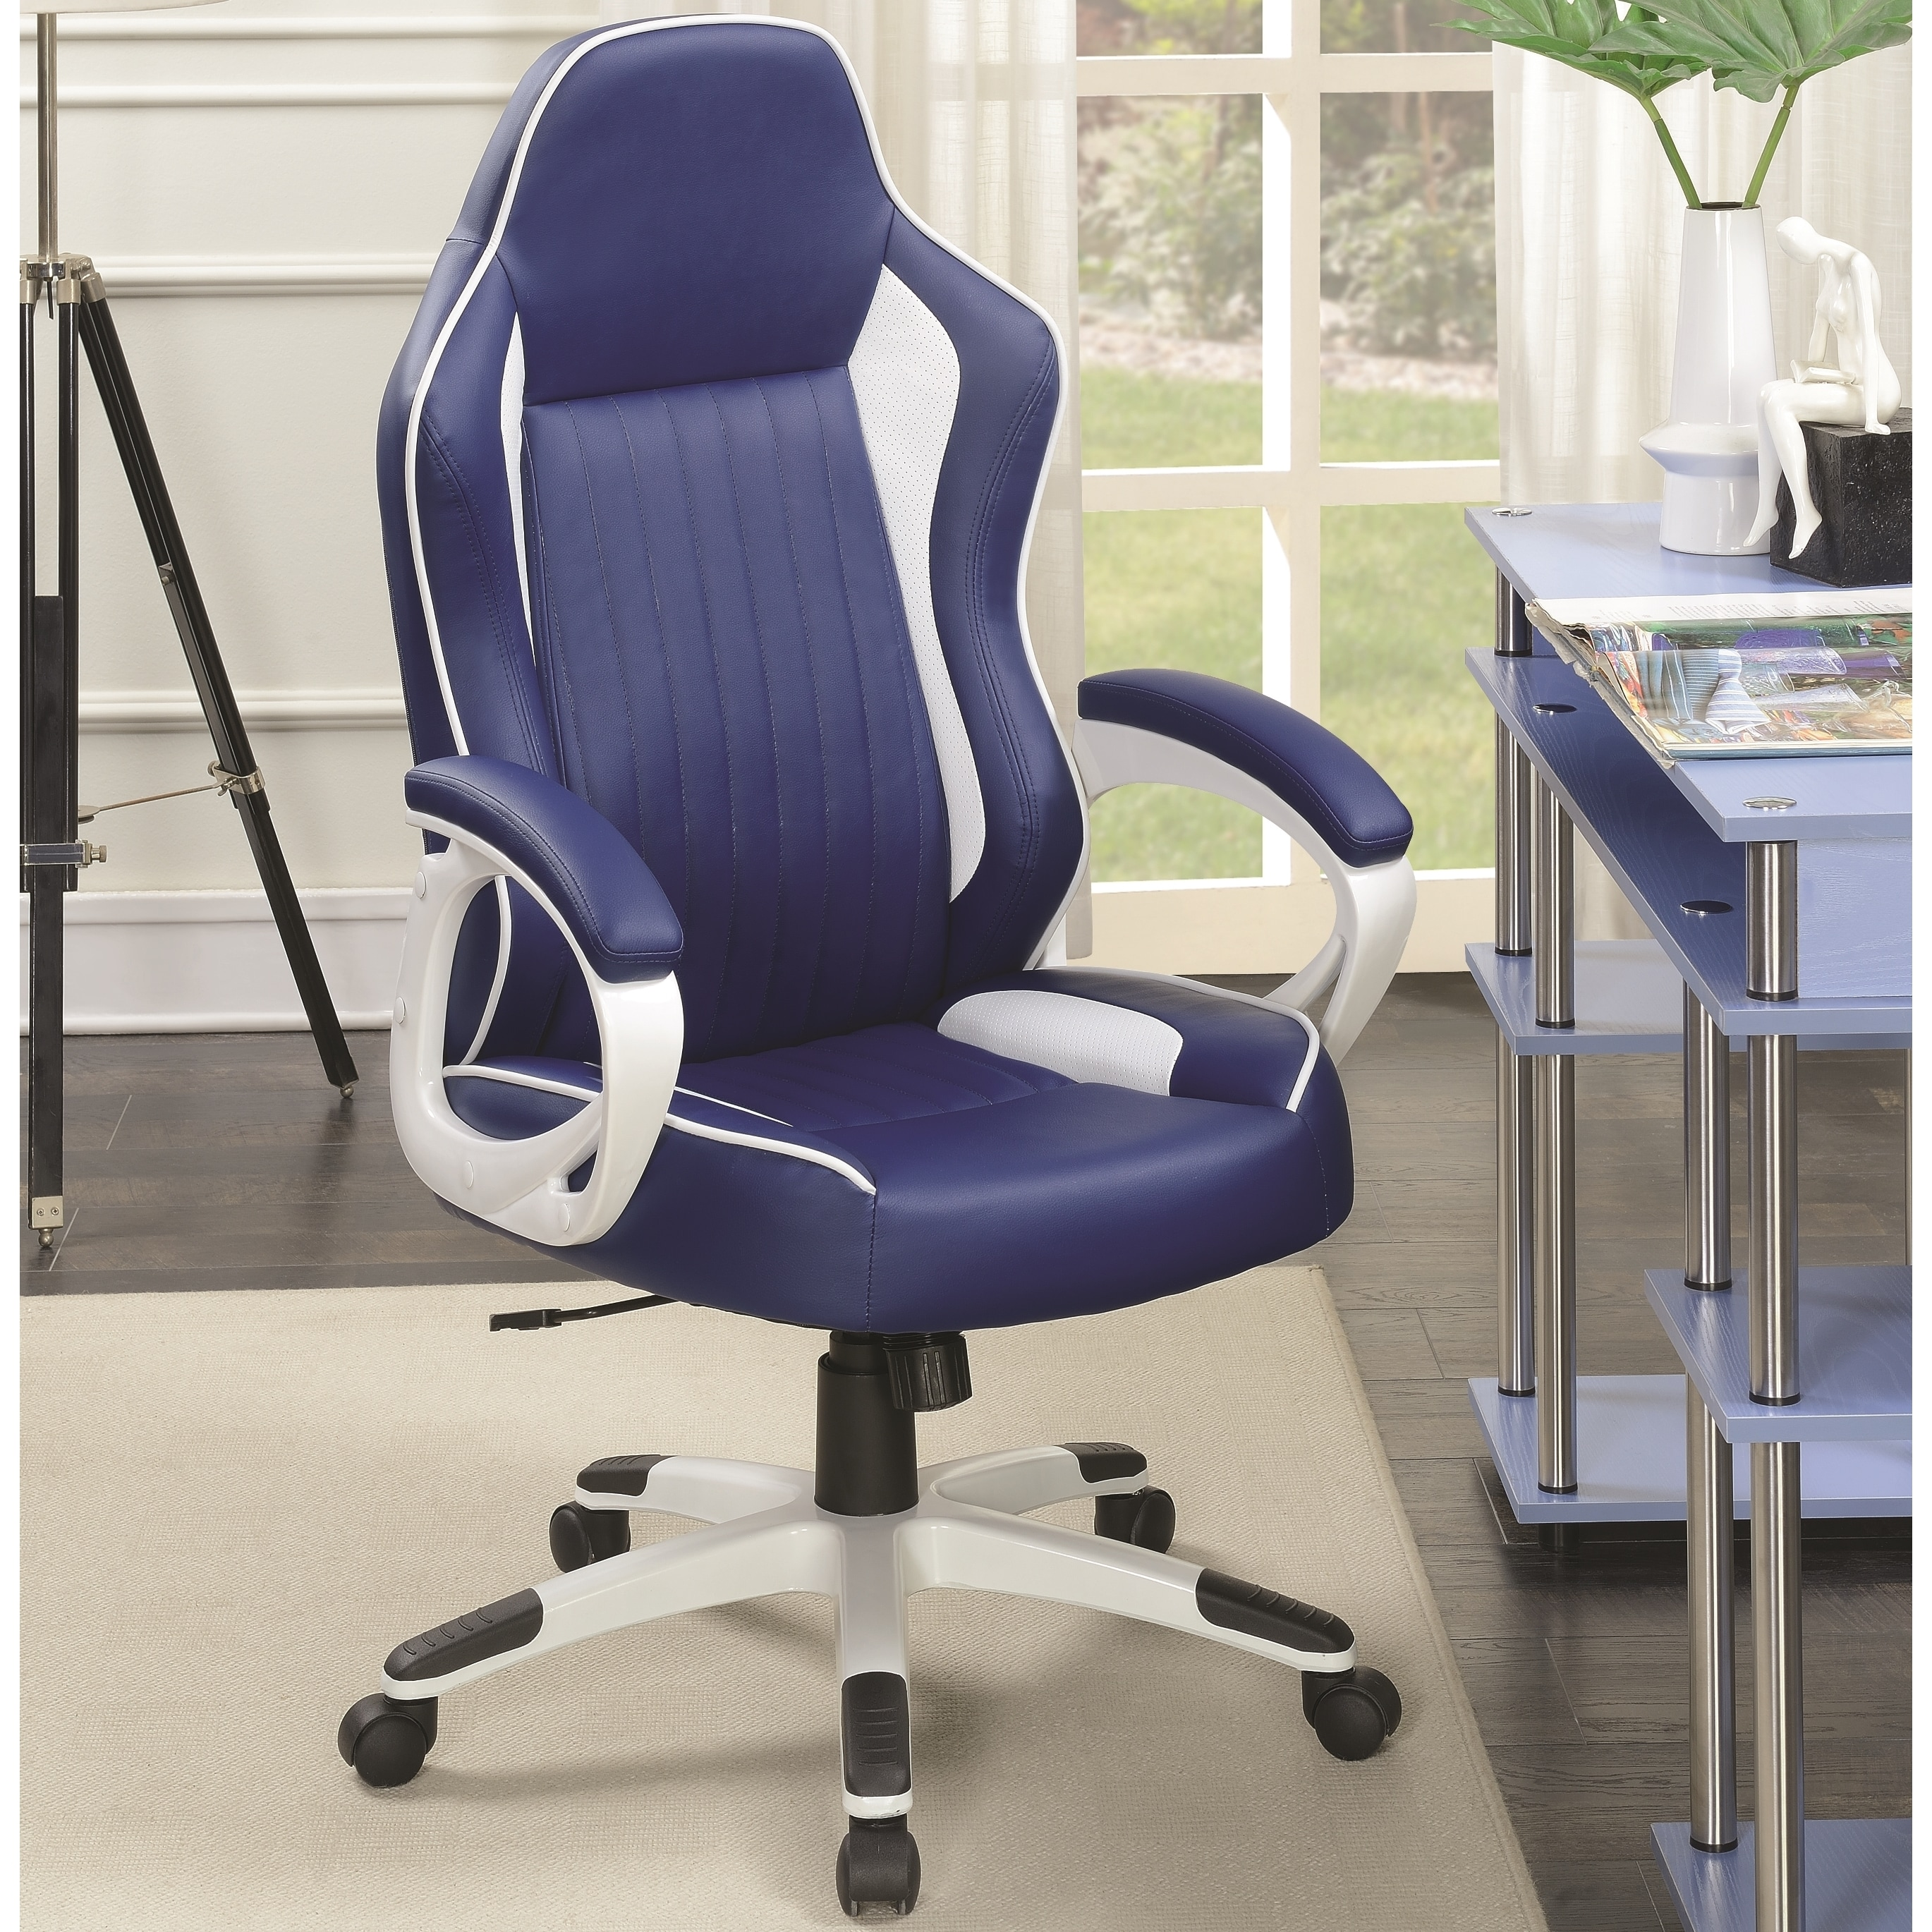 office gaming sports black chair raygar racing padded deluxe blue